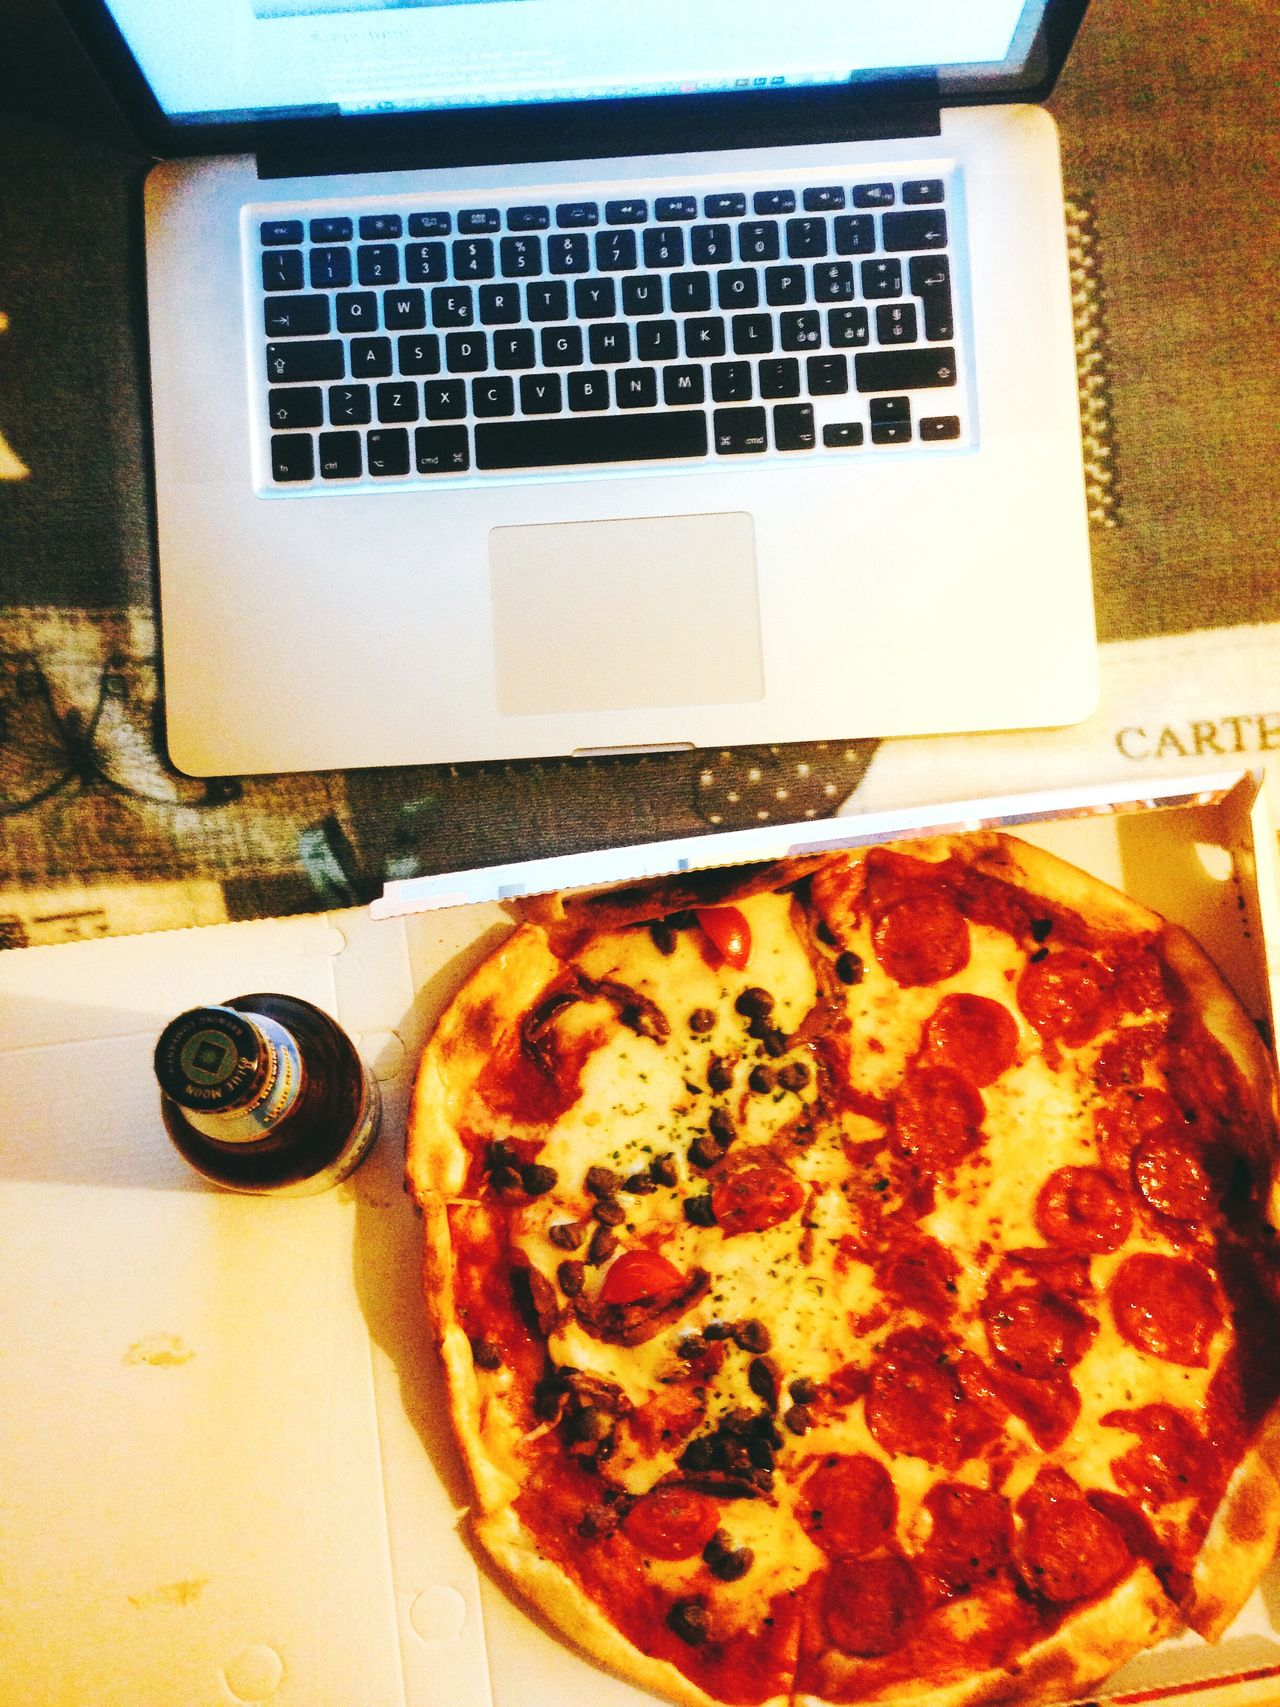 Pizza, laptop and beer Pizza Computer Beer Italy🇮🇹 Onthetable Pepperoni Napoli Pizza <3 Pizzalover